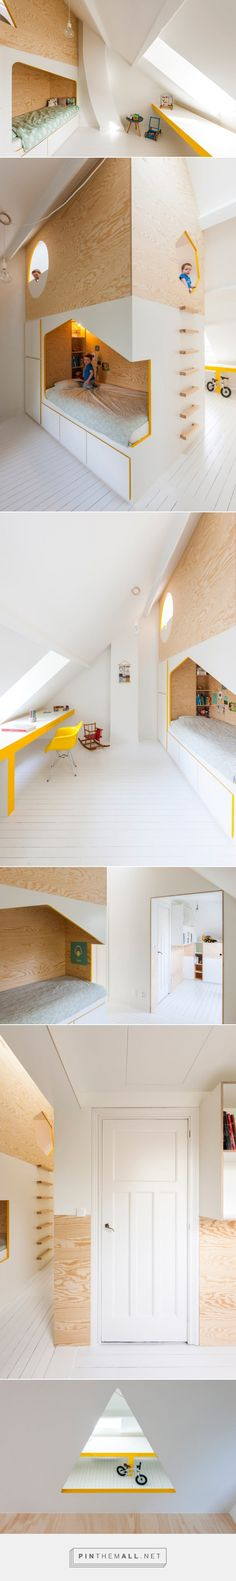 A Kid's Room That Will Make You Want to Be a Kid Again - Design Milk... - a grouped images picture - Pin Them All